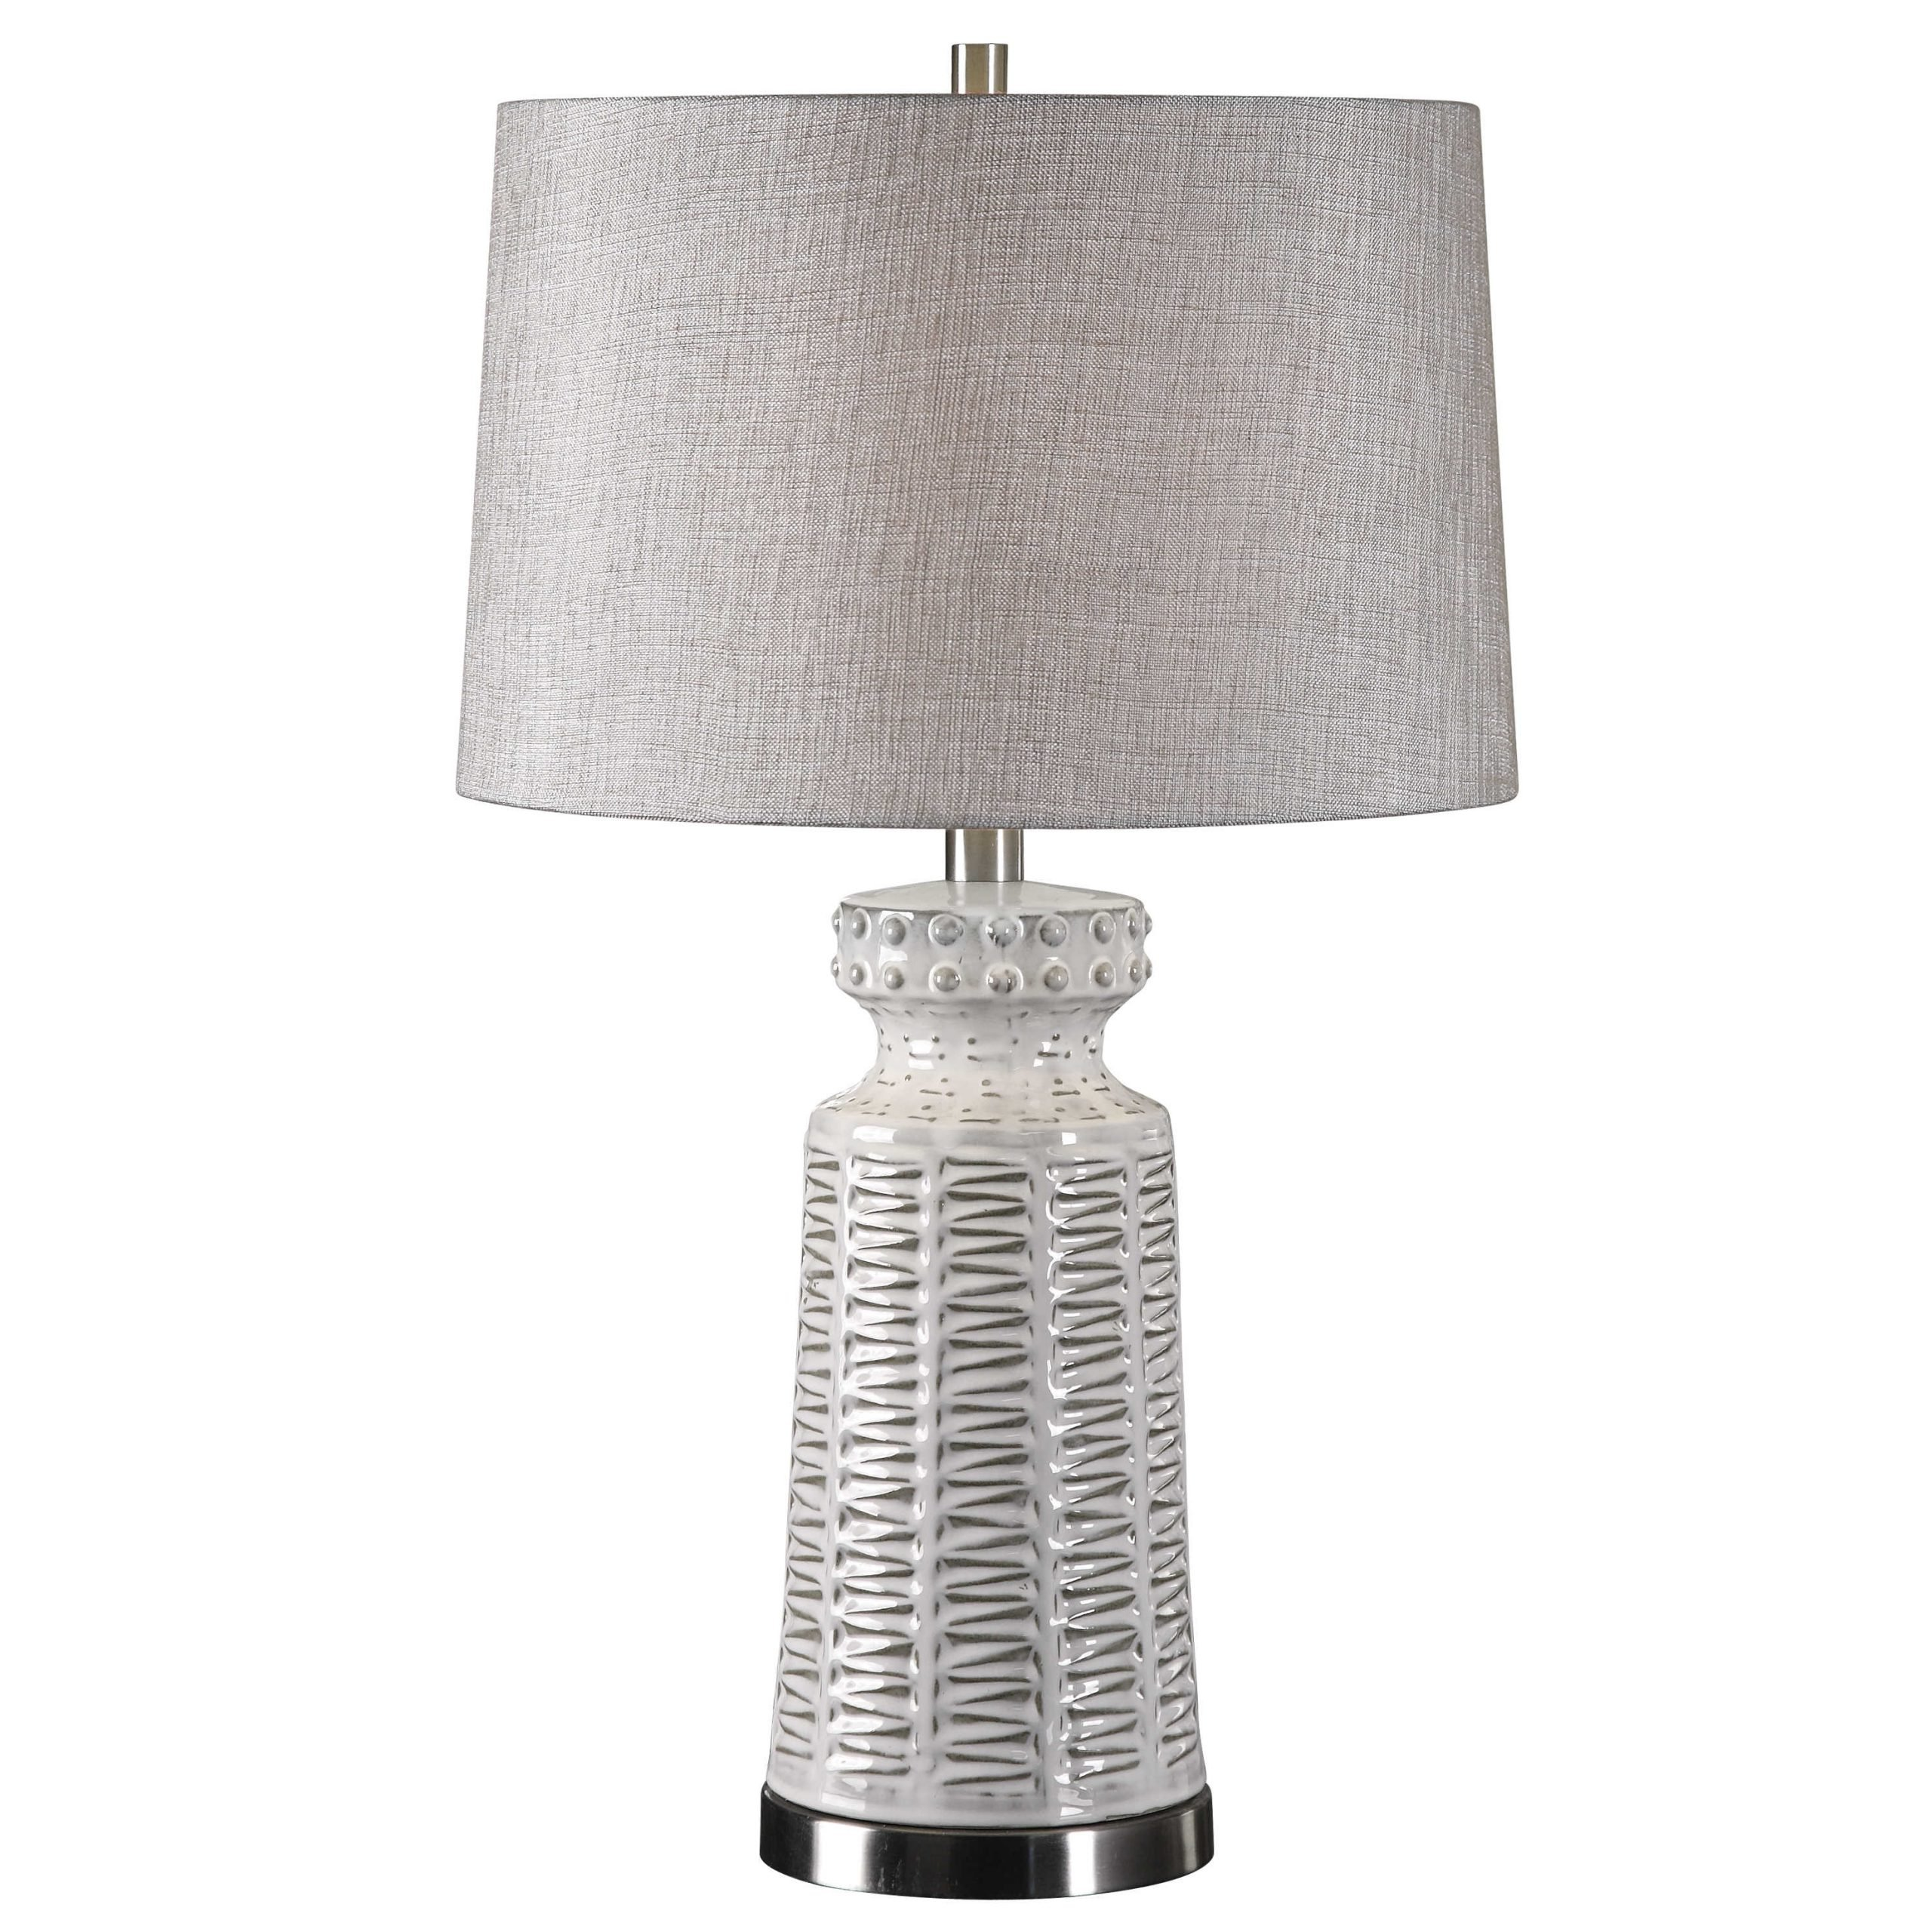 Uttermost Kansa Table Lamp White Ceramic Decorative Canvas Distressed